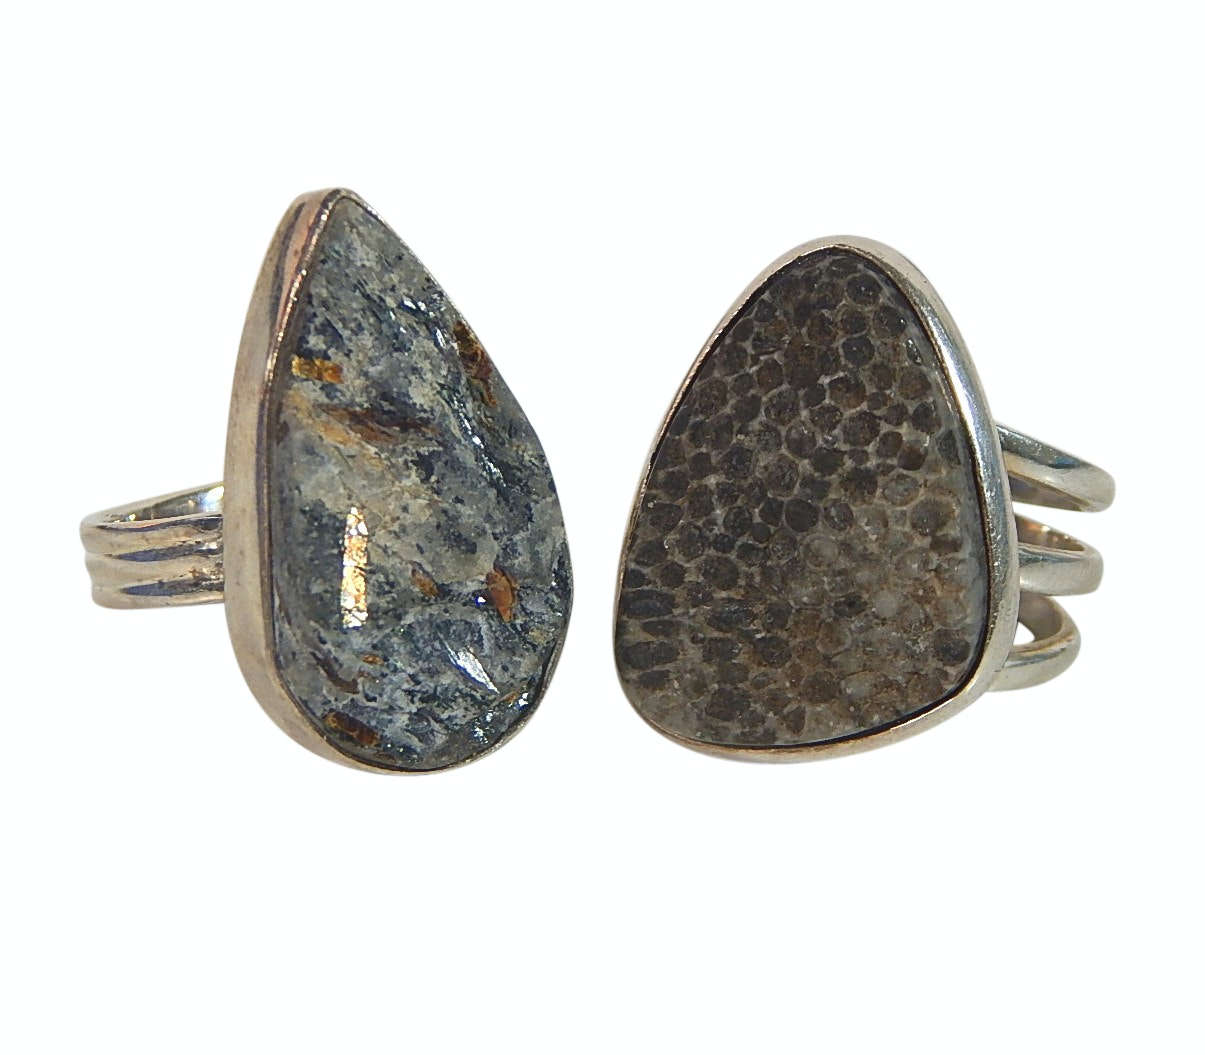 Two Sterling Silver Rings with Natural Stones